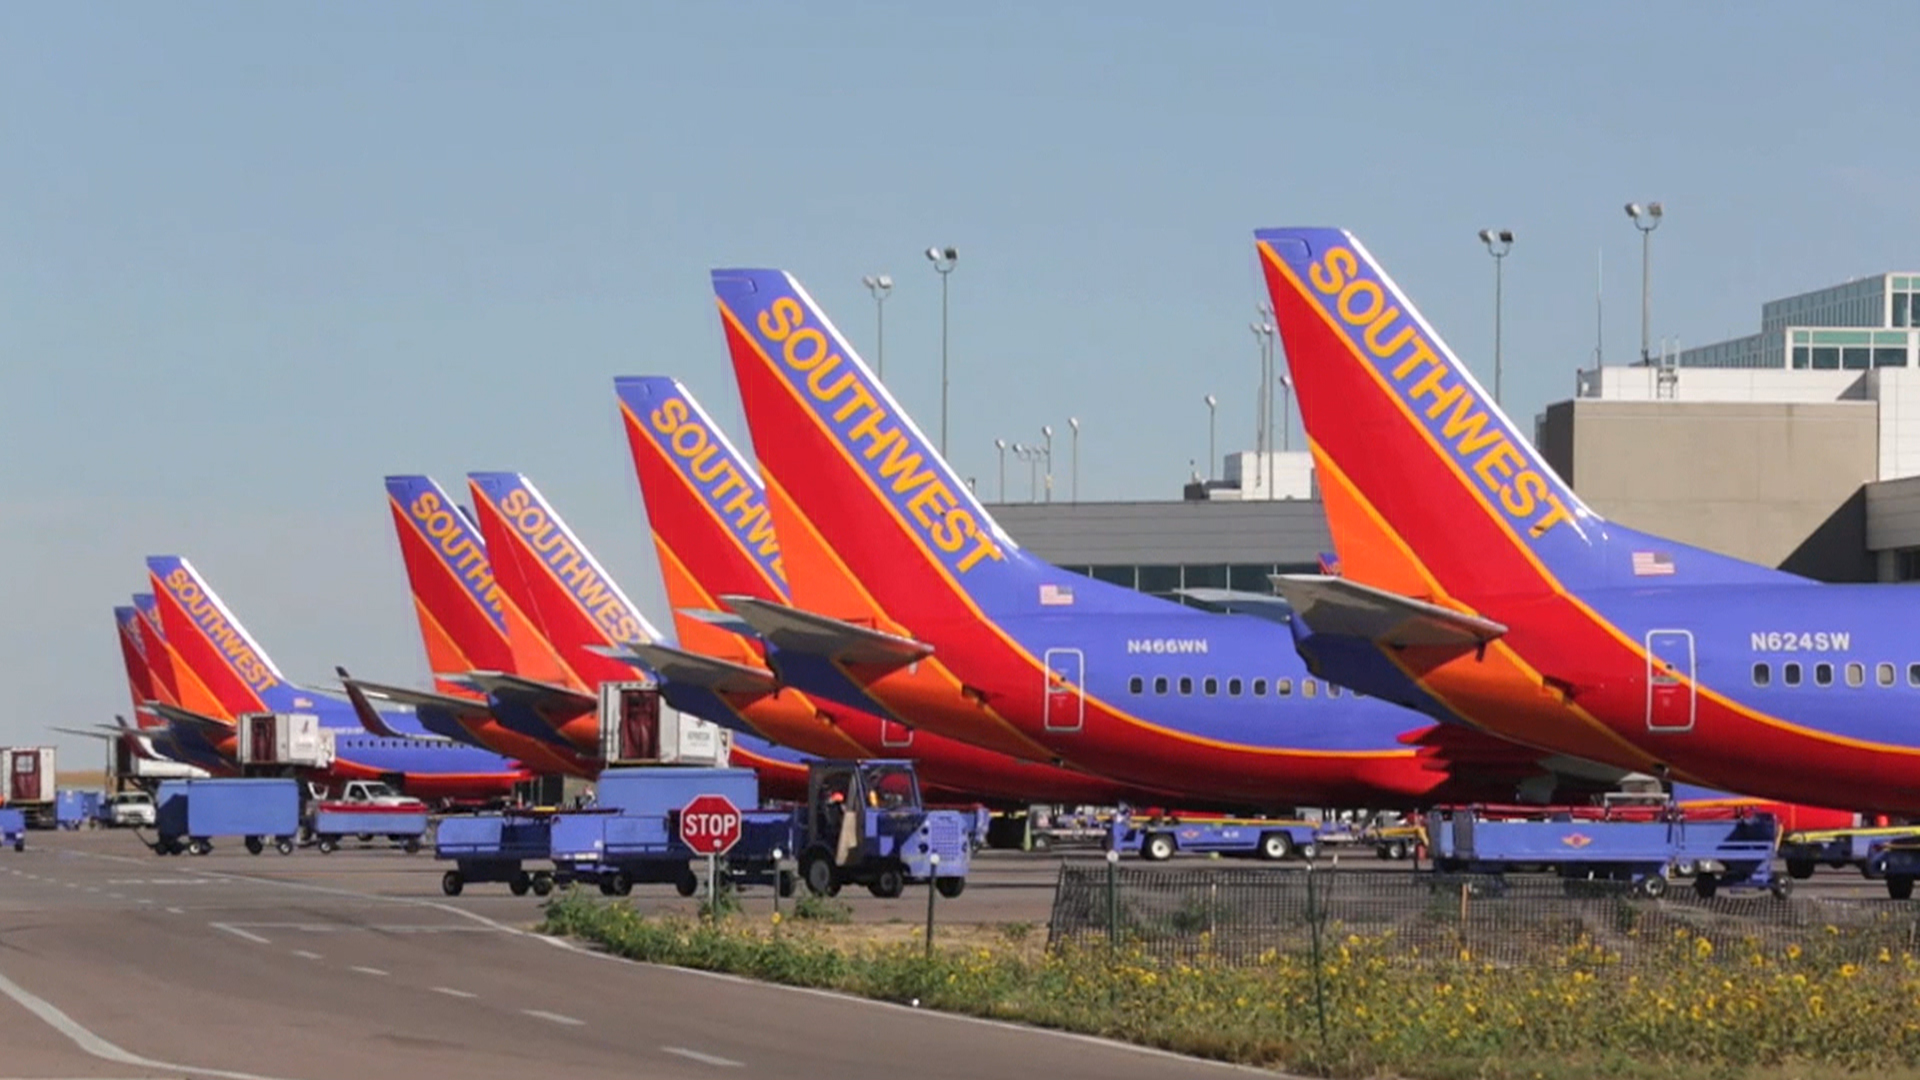 passenger airline industry southwest airlines At 43 years of age, southwest airlines is firmly entrenched in middle age within a mature us market place during its more than four decades the airline has largely.